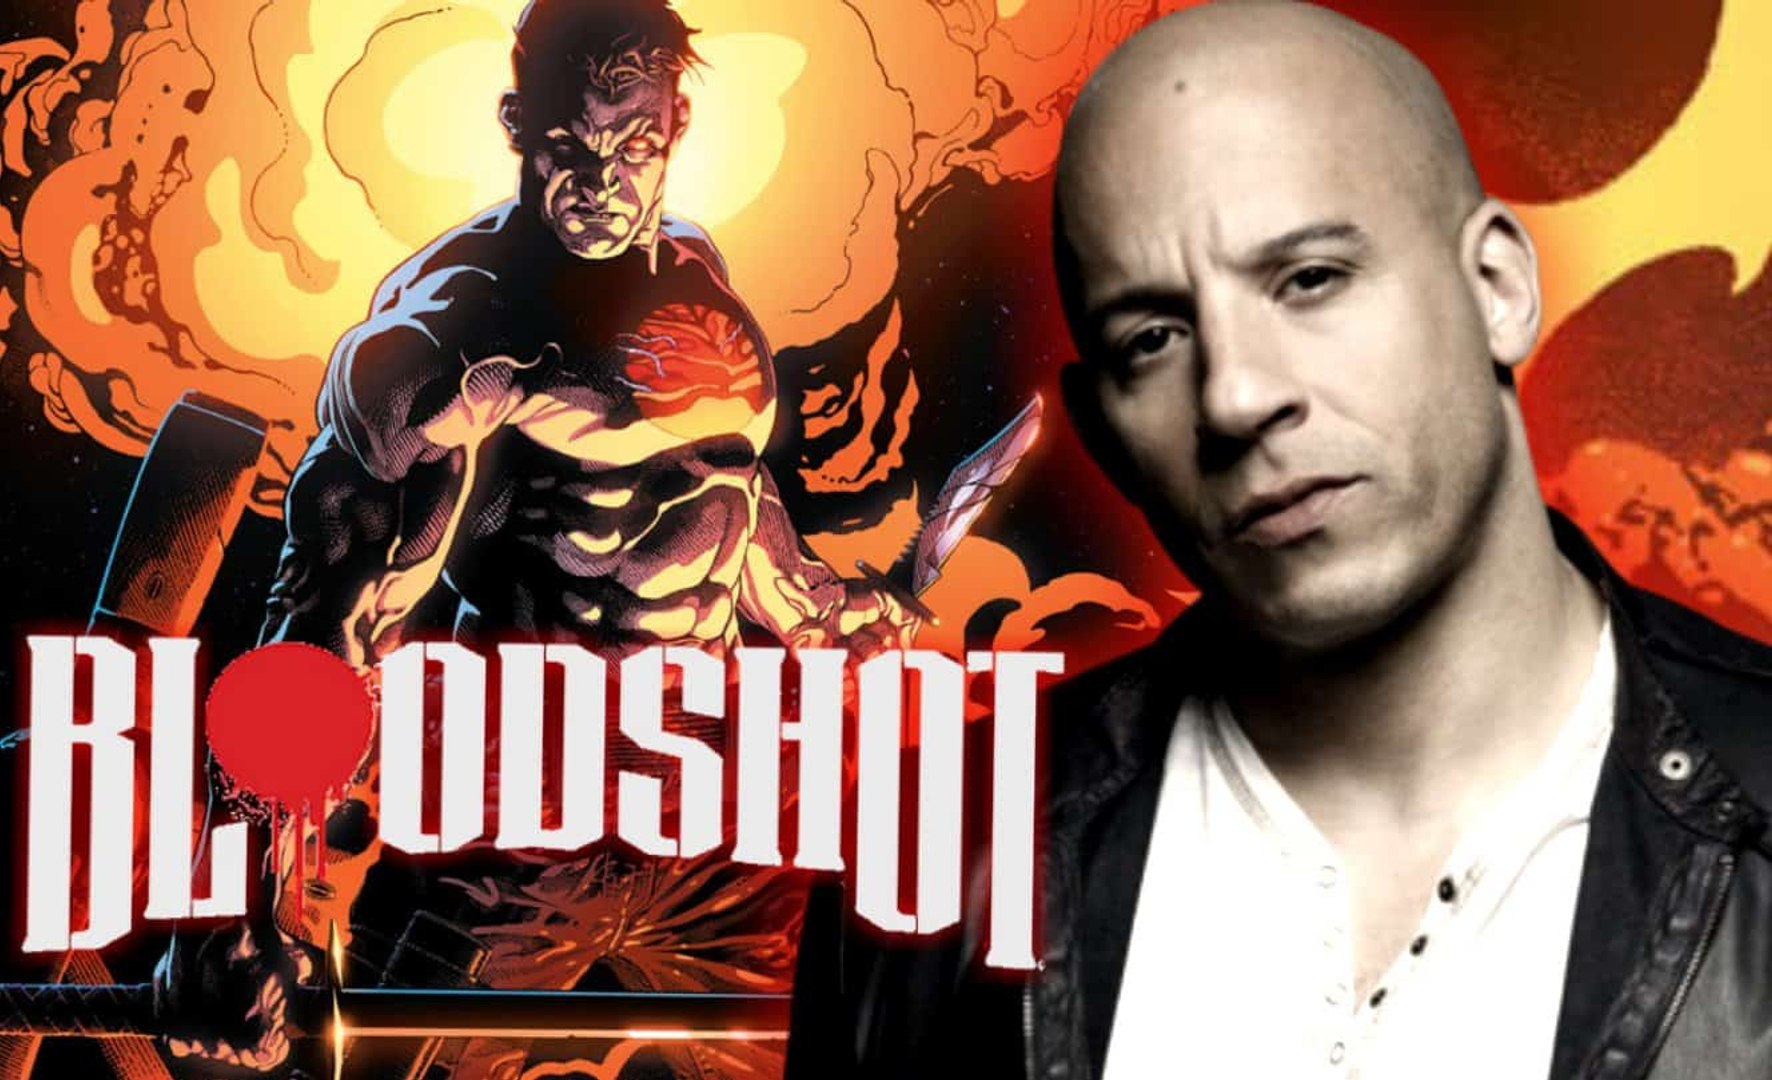 Bloodshot Trailer 02/21/2020